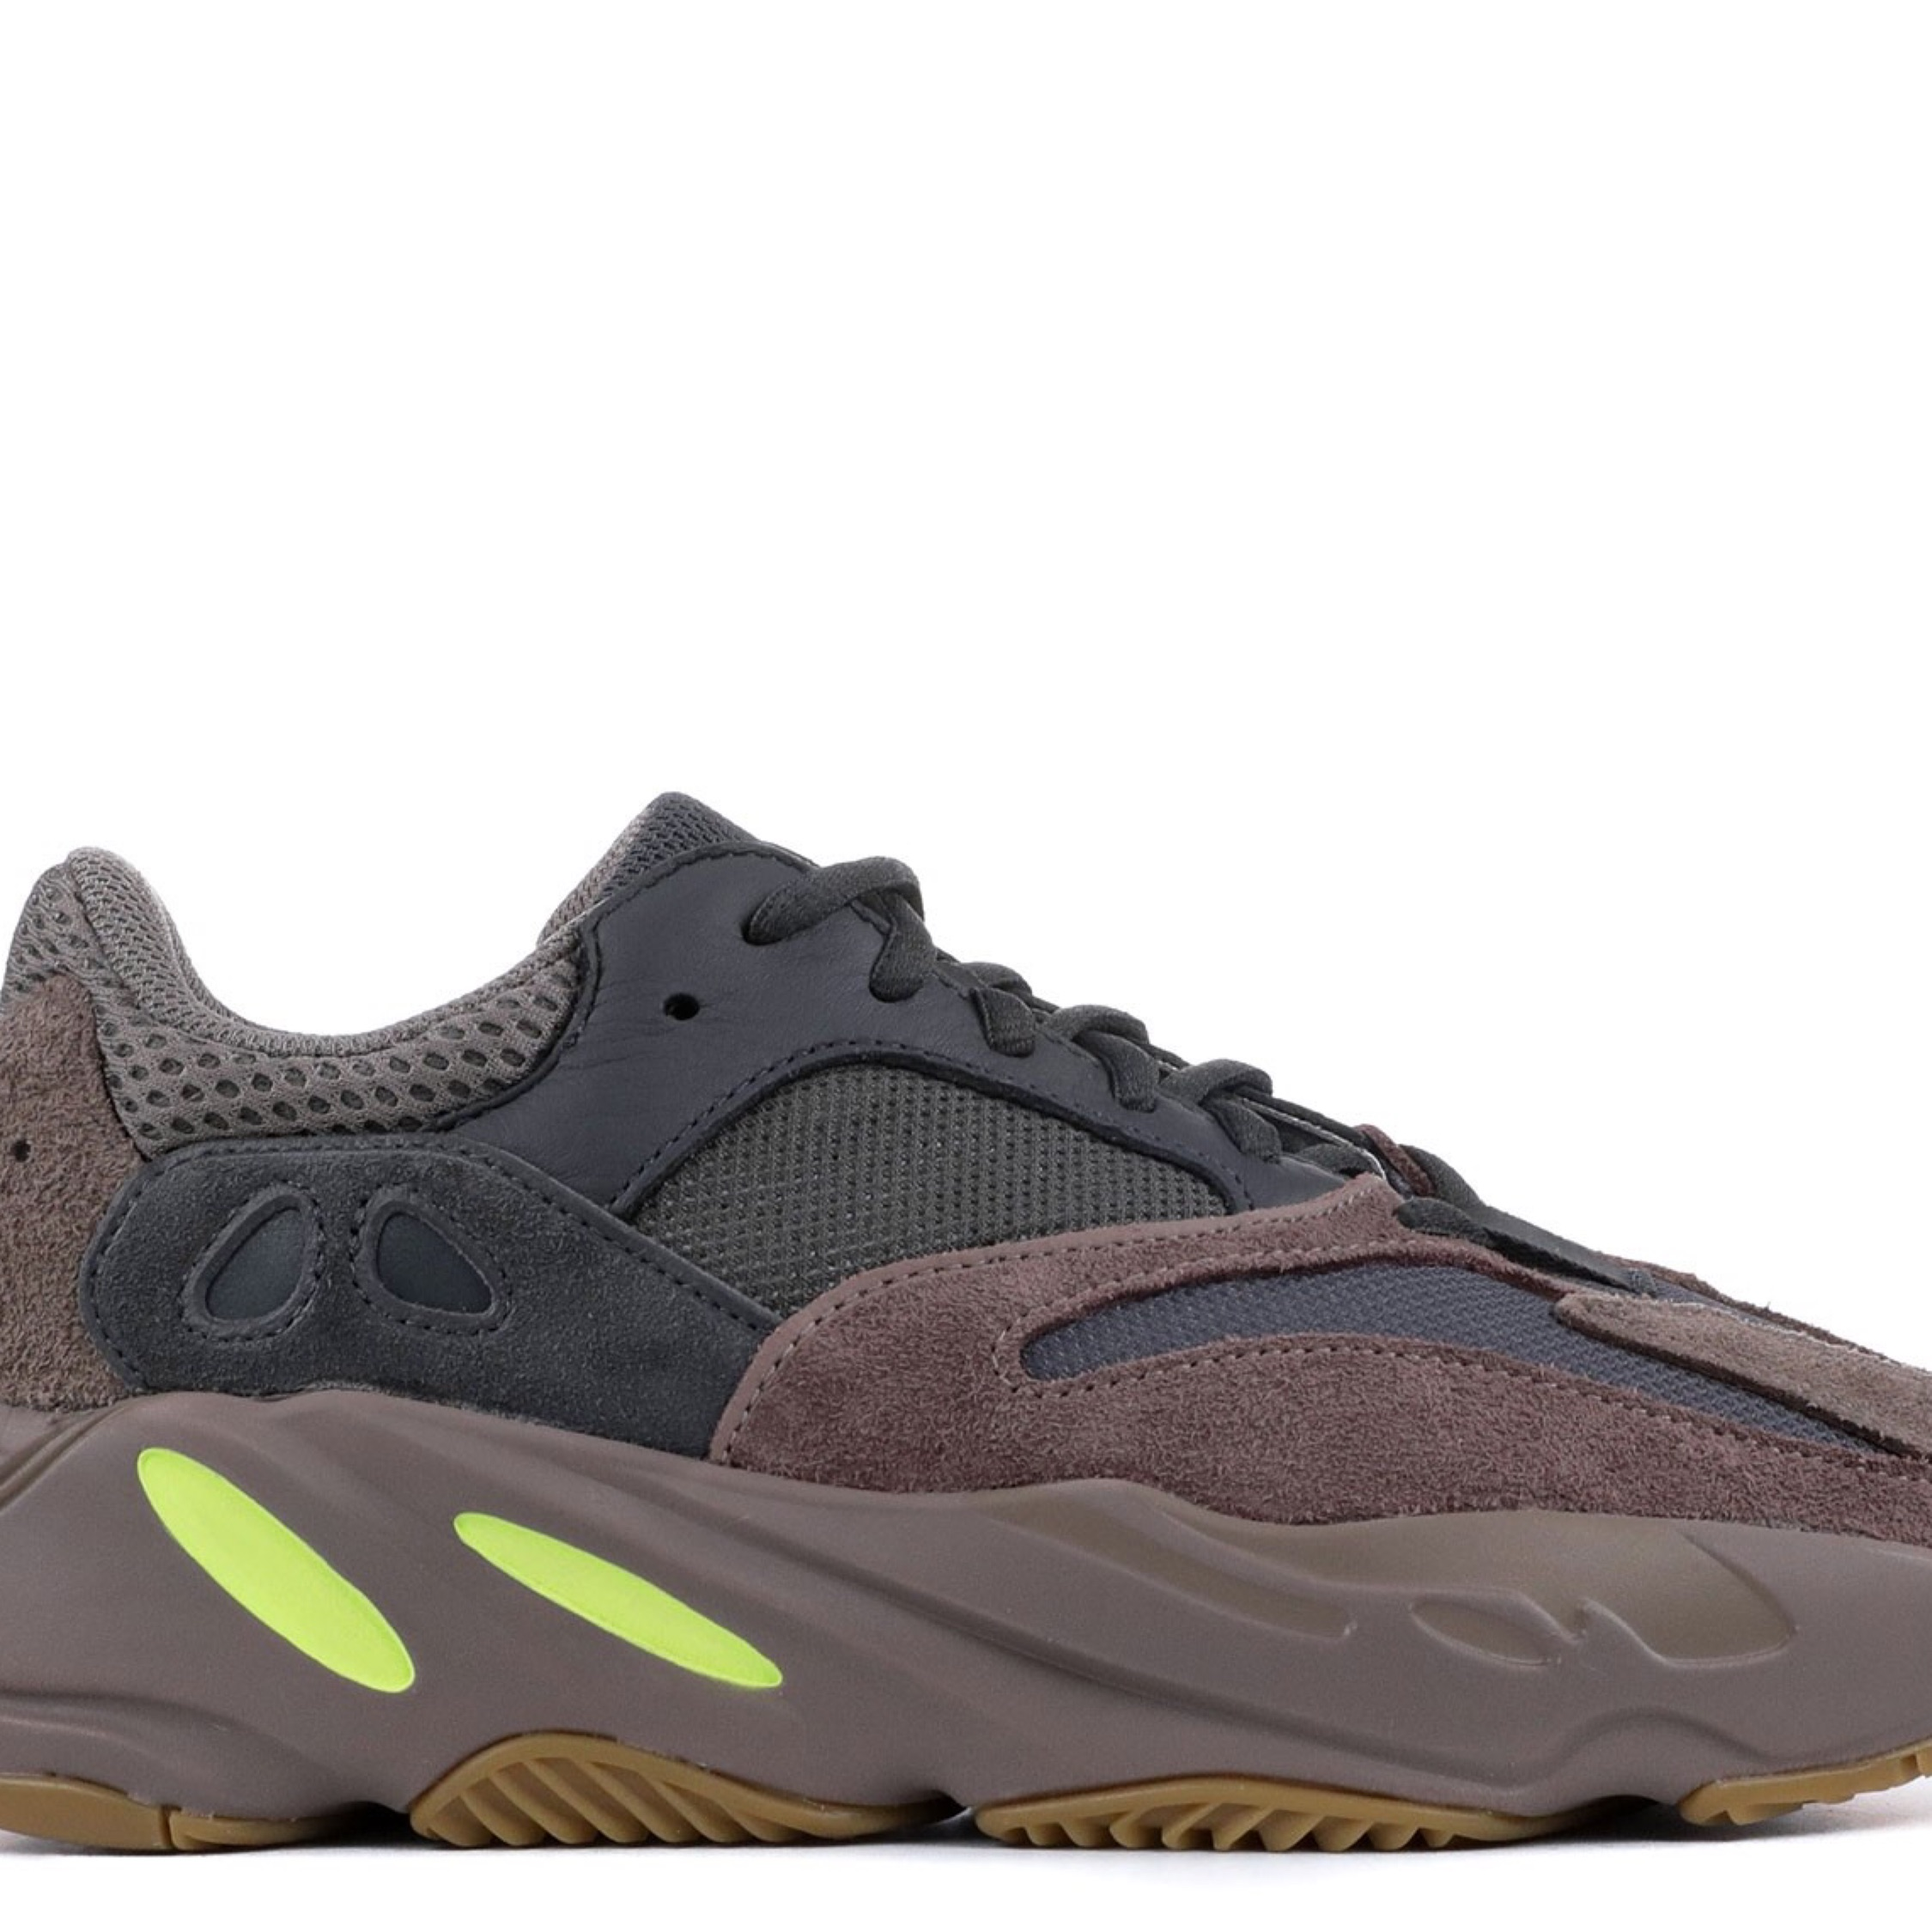 Trade Gucci,Yeezy 700